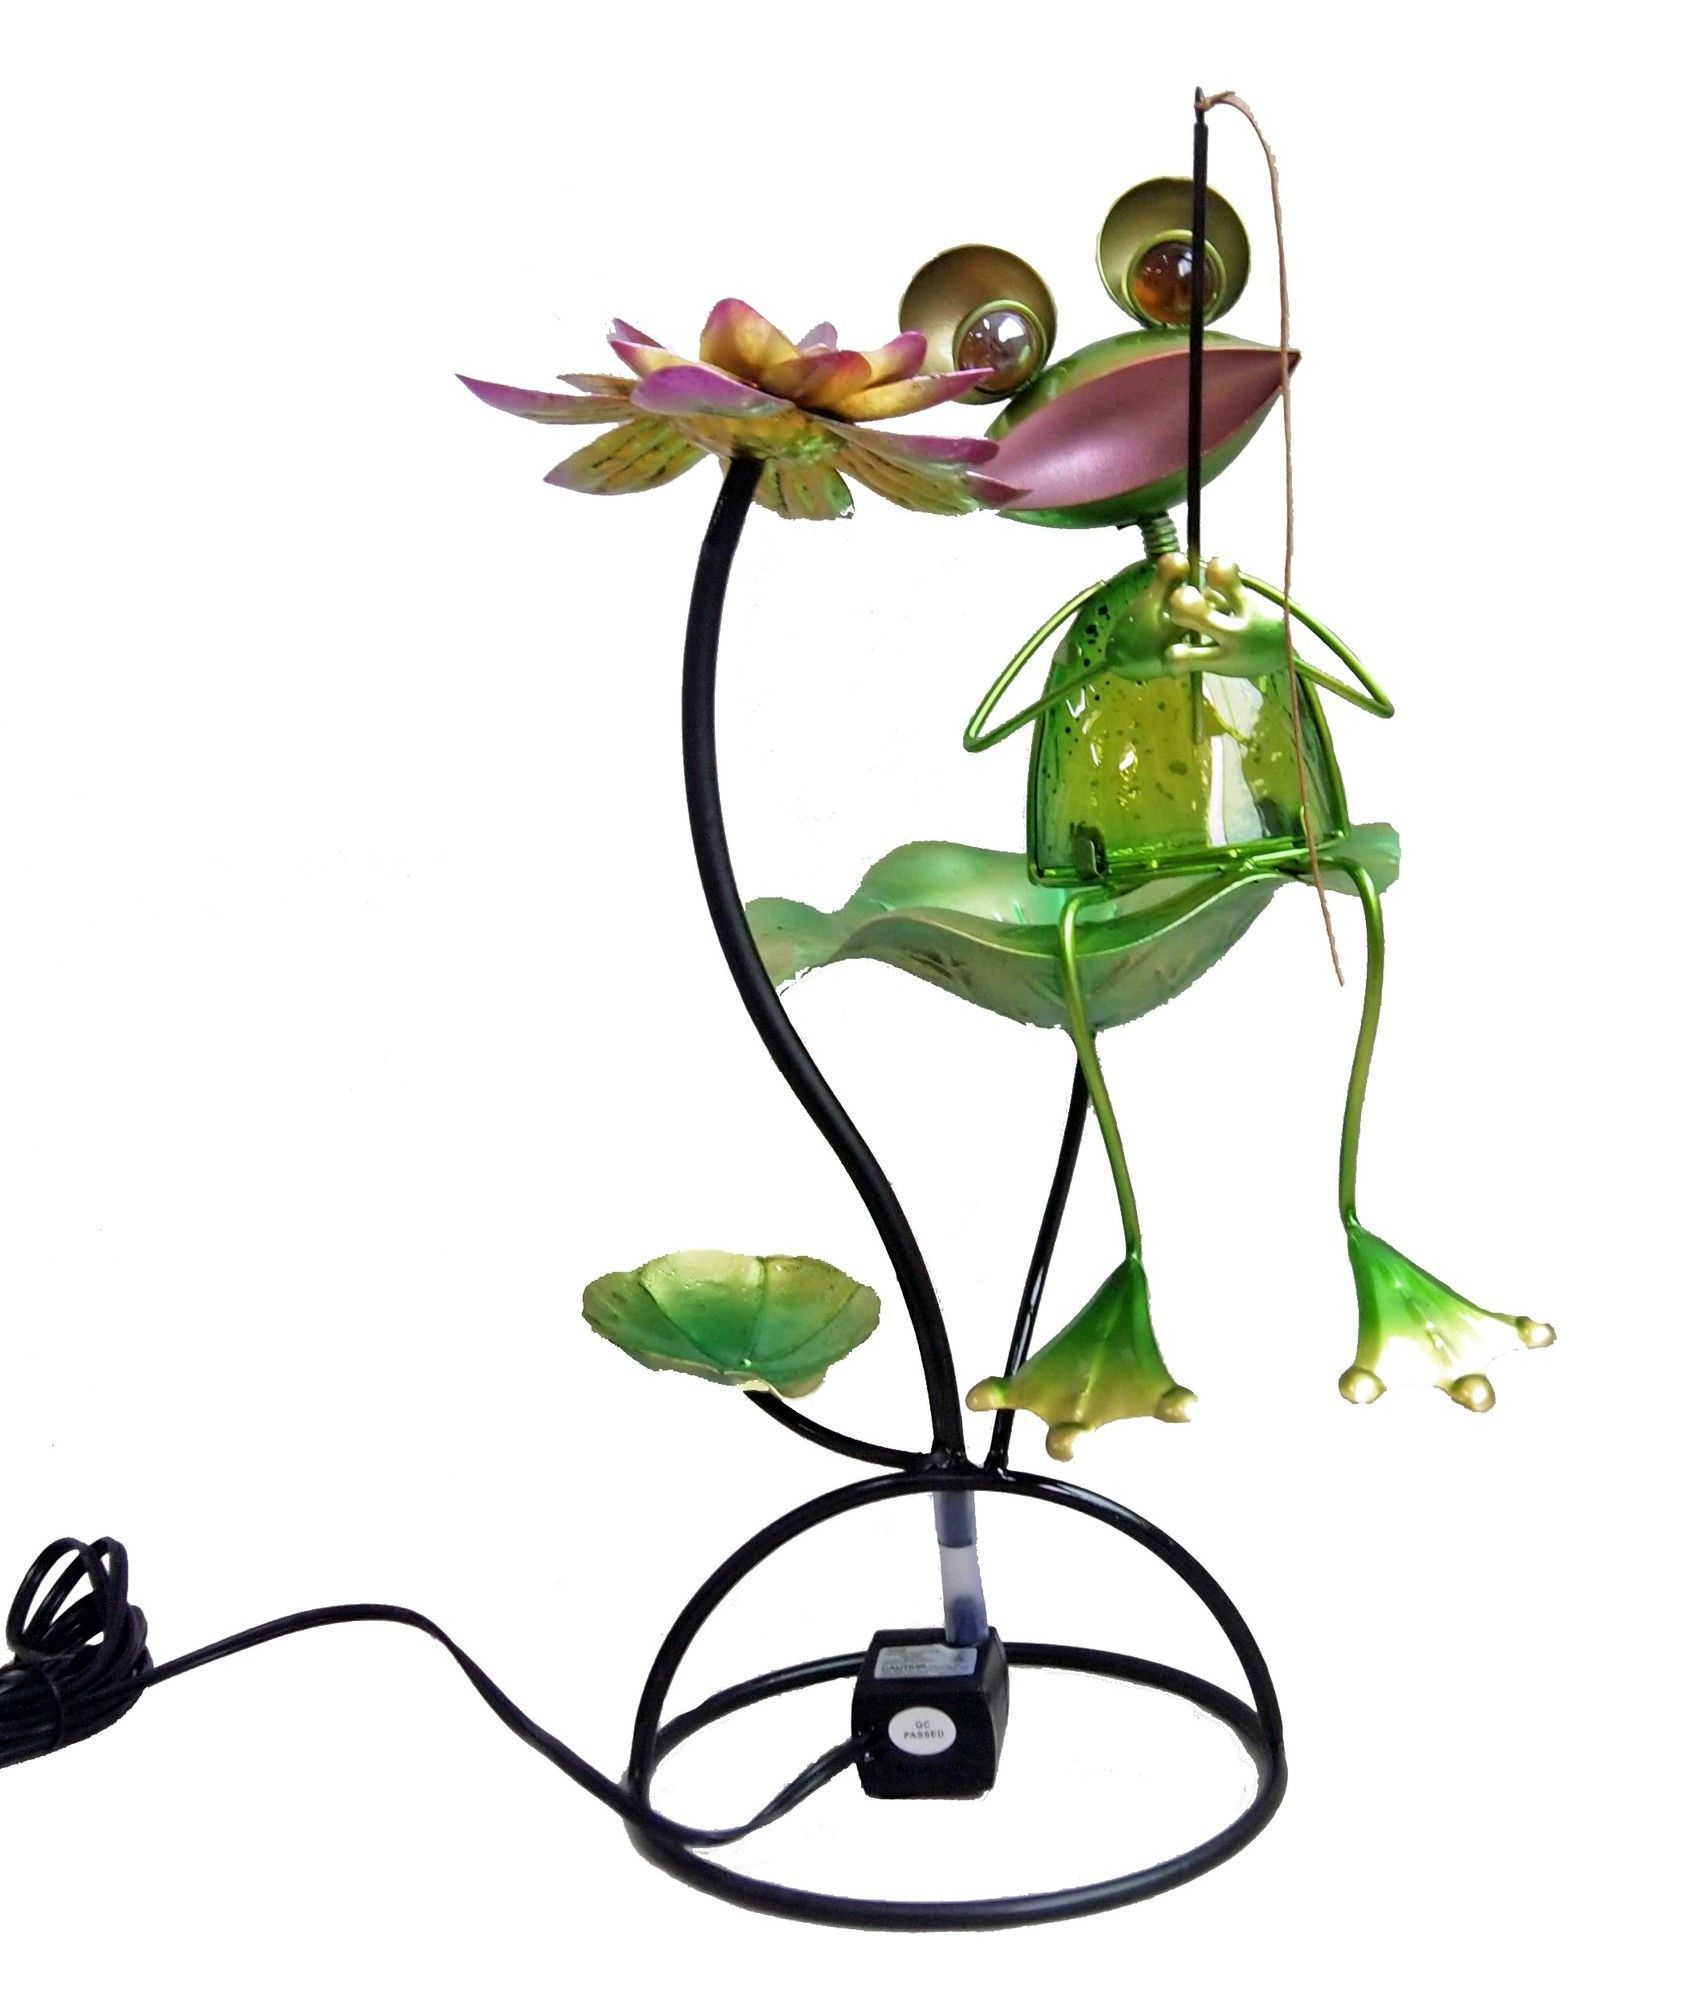 Frog Tabletop Fountain Tabletop fountain, Outdoor wall